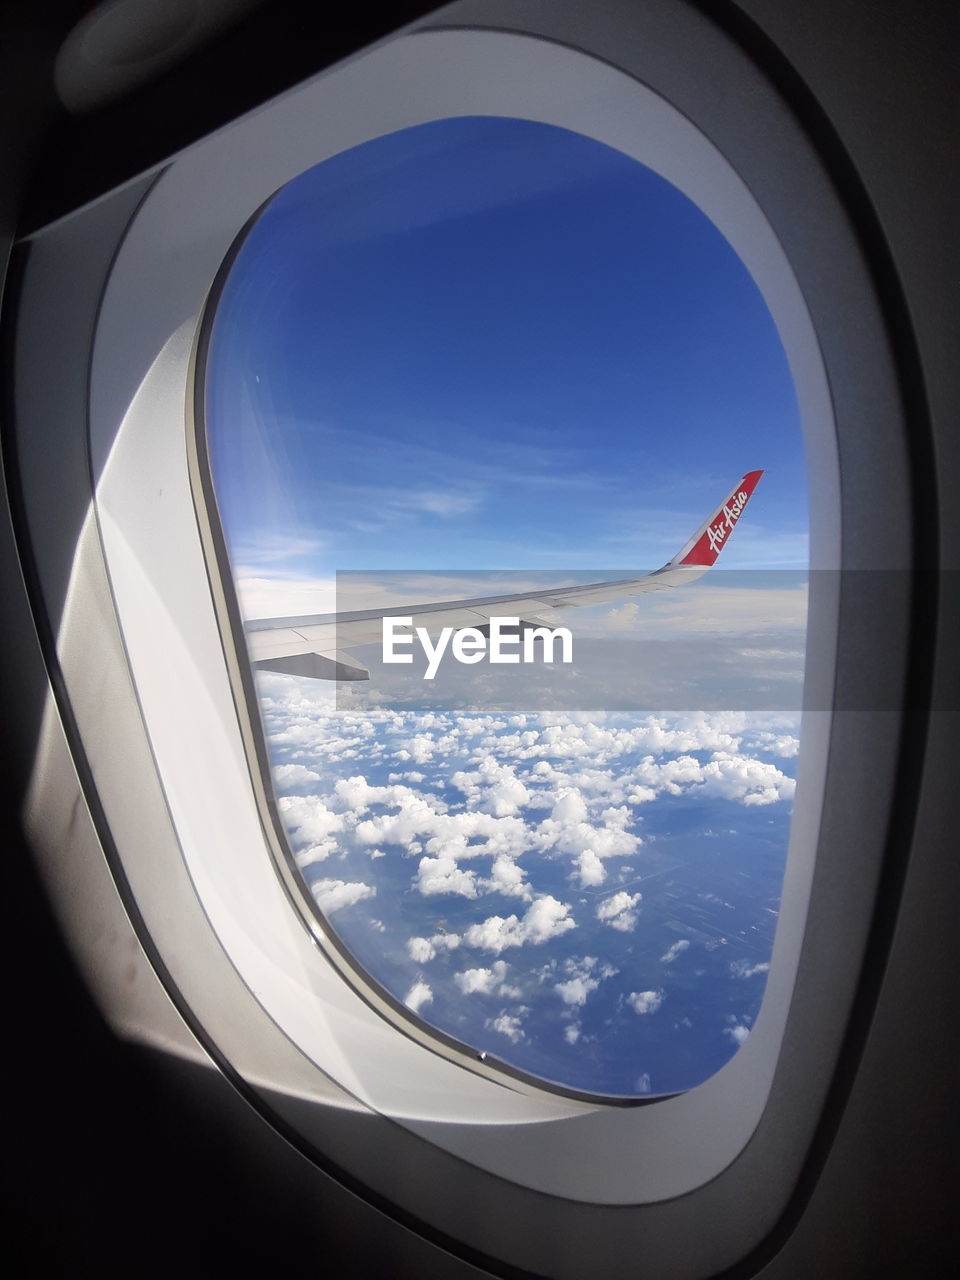 airplane, air vehicle, transportation, mode of transportation, cloud - sky, window, flying, vehicle interior, sky, travel, glass - material, aircraft wing, mid-air, transparent, beauty in nature, journey, nature, no people, public transportation, scenics - nature, outdoors